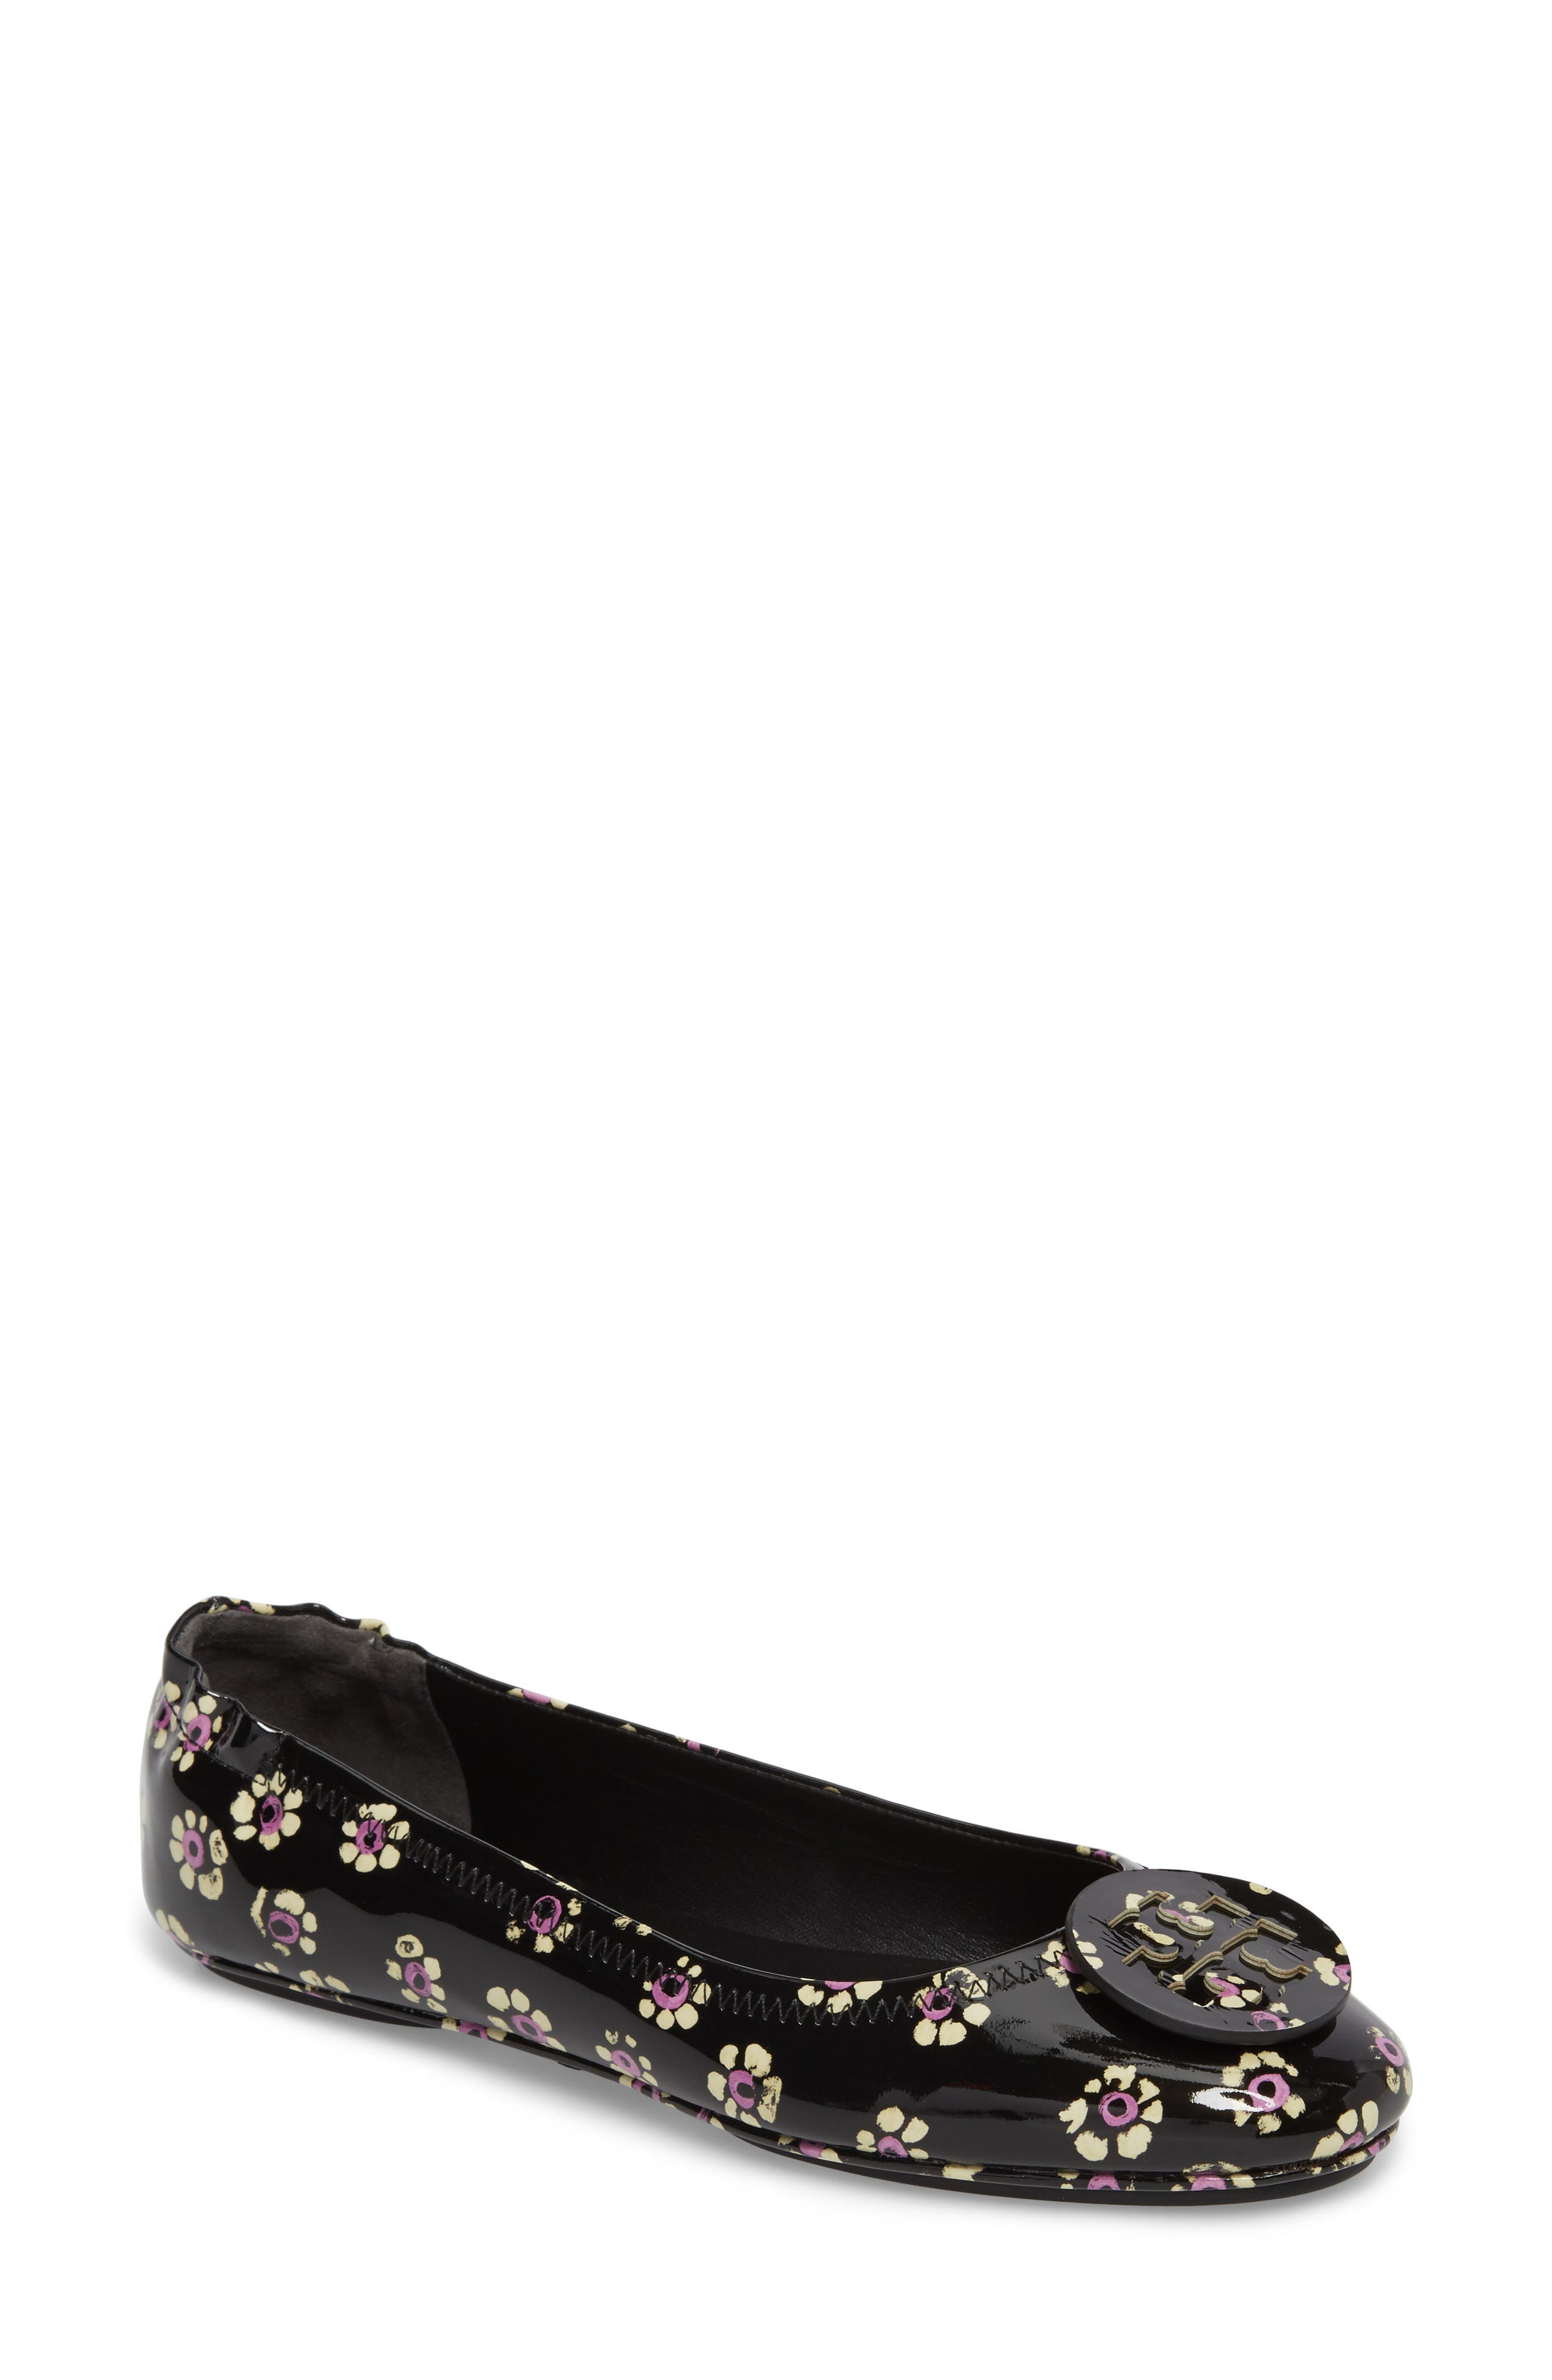 Tory Burch 'Minnie' Travel Ballet Flat (Women)